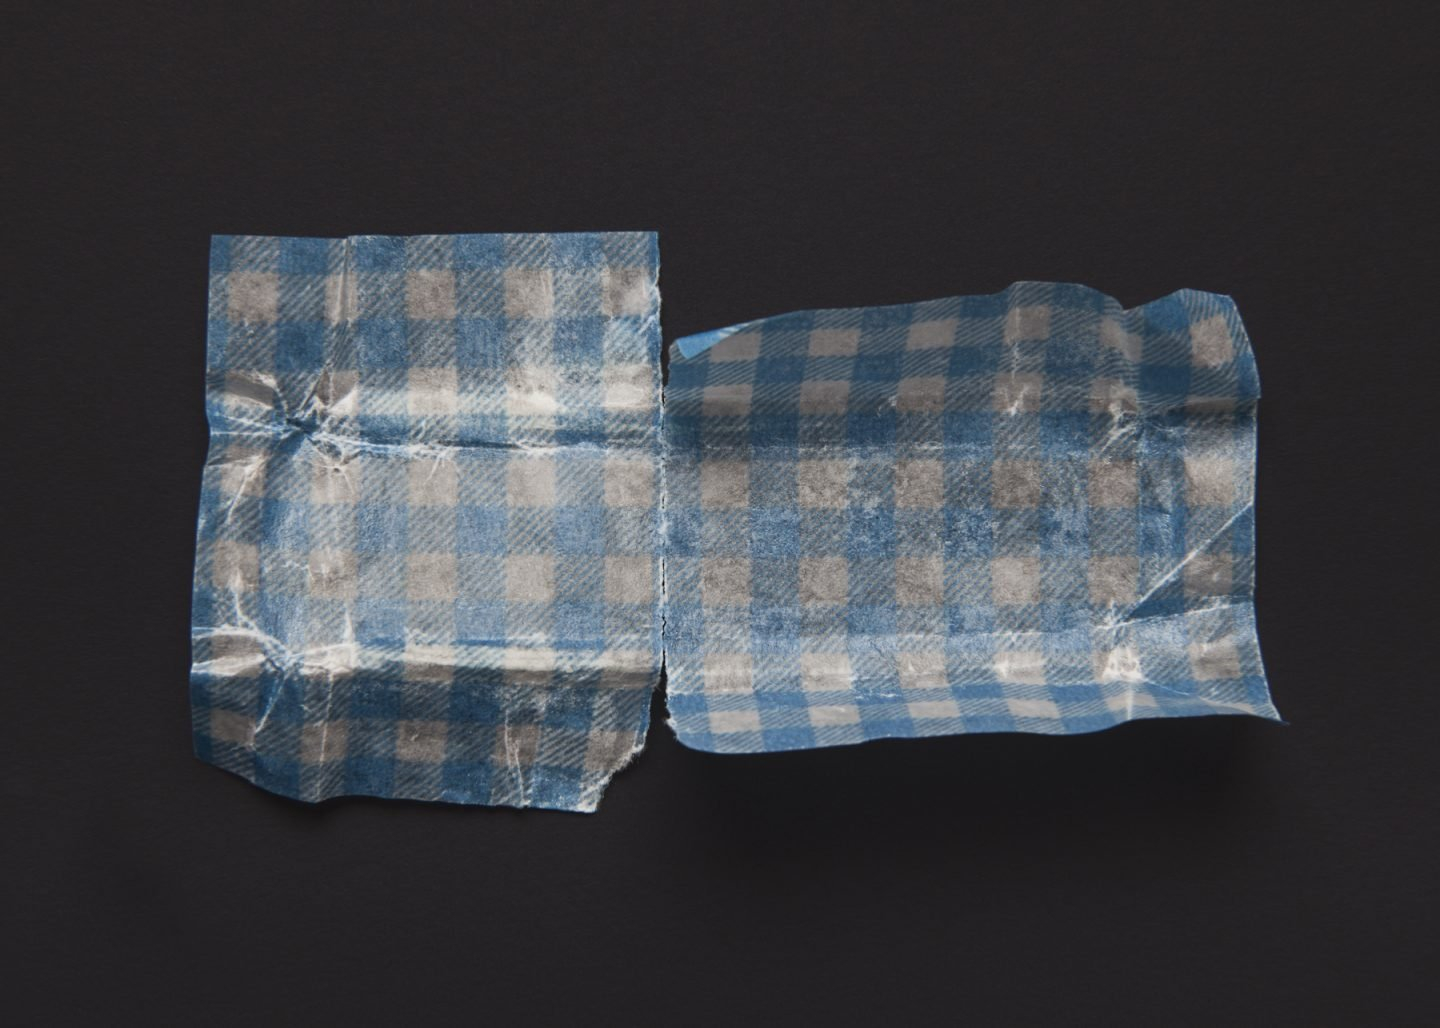 iGNANT-Photography-Delphine-Burton-Encouble-008